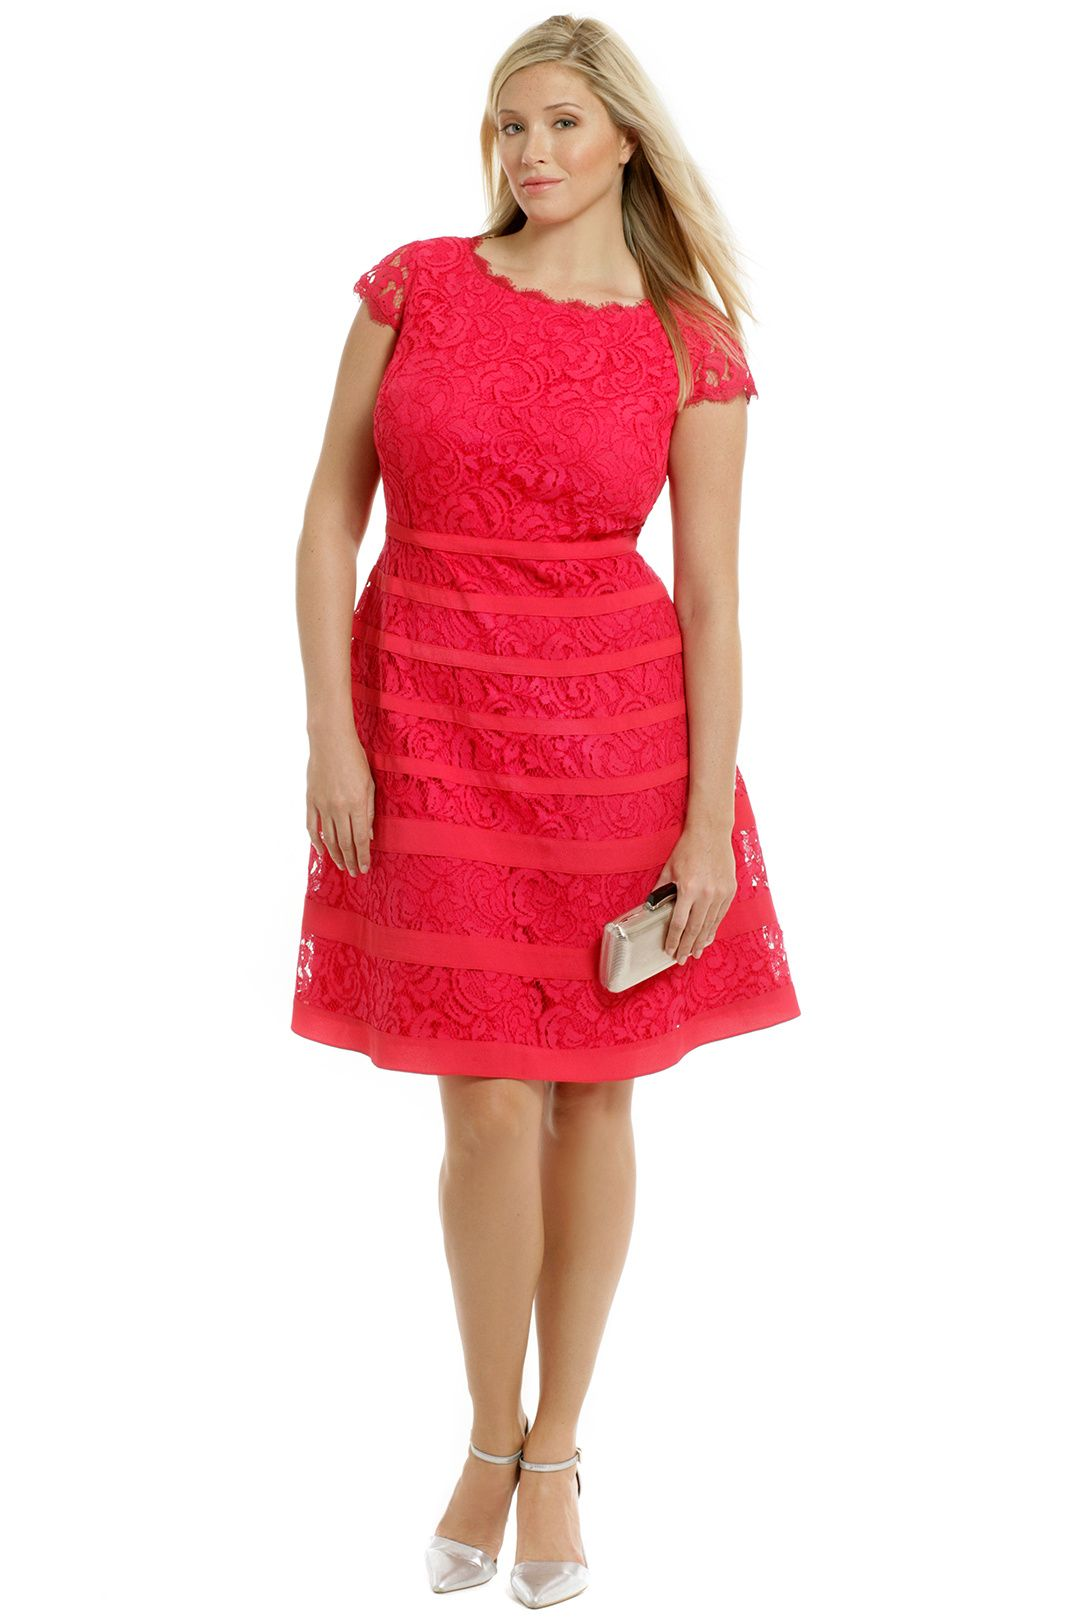 Adrianna Papell Begin Again Dress | Be Their Guest | Dresses, Rental ...